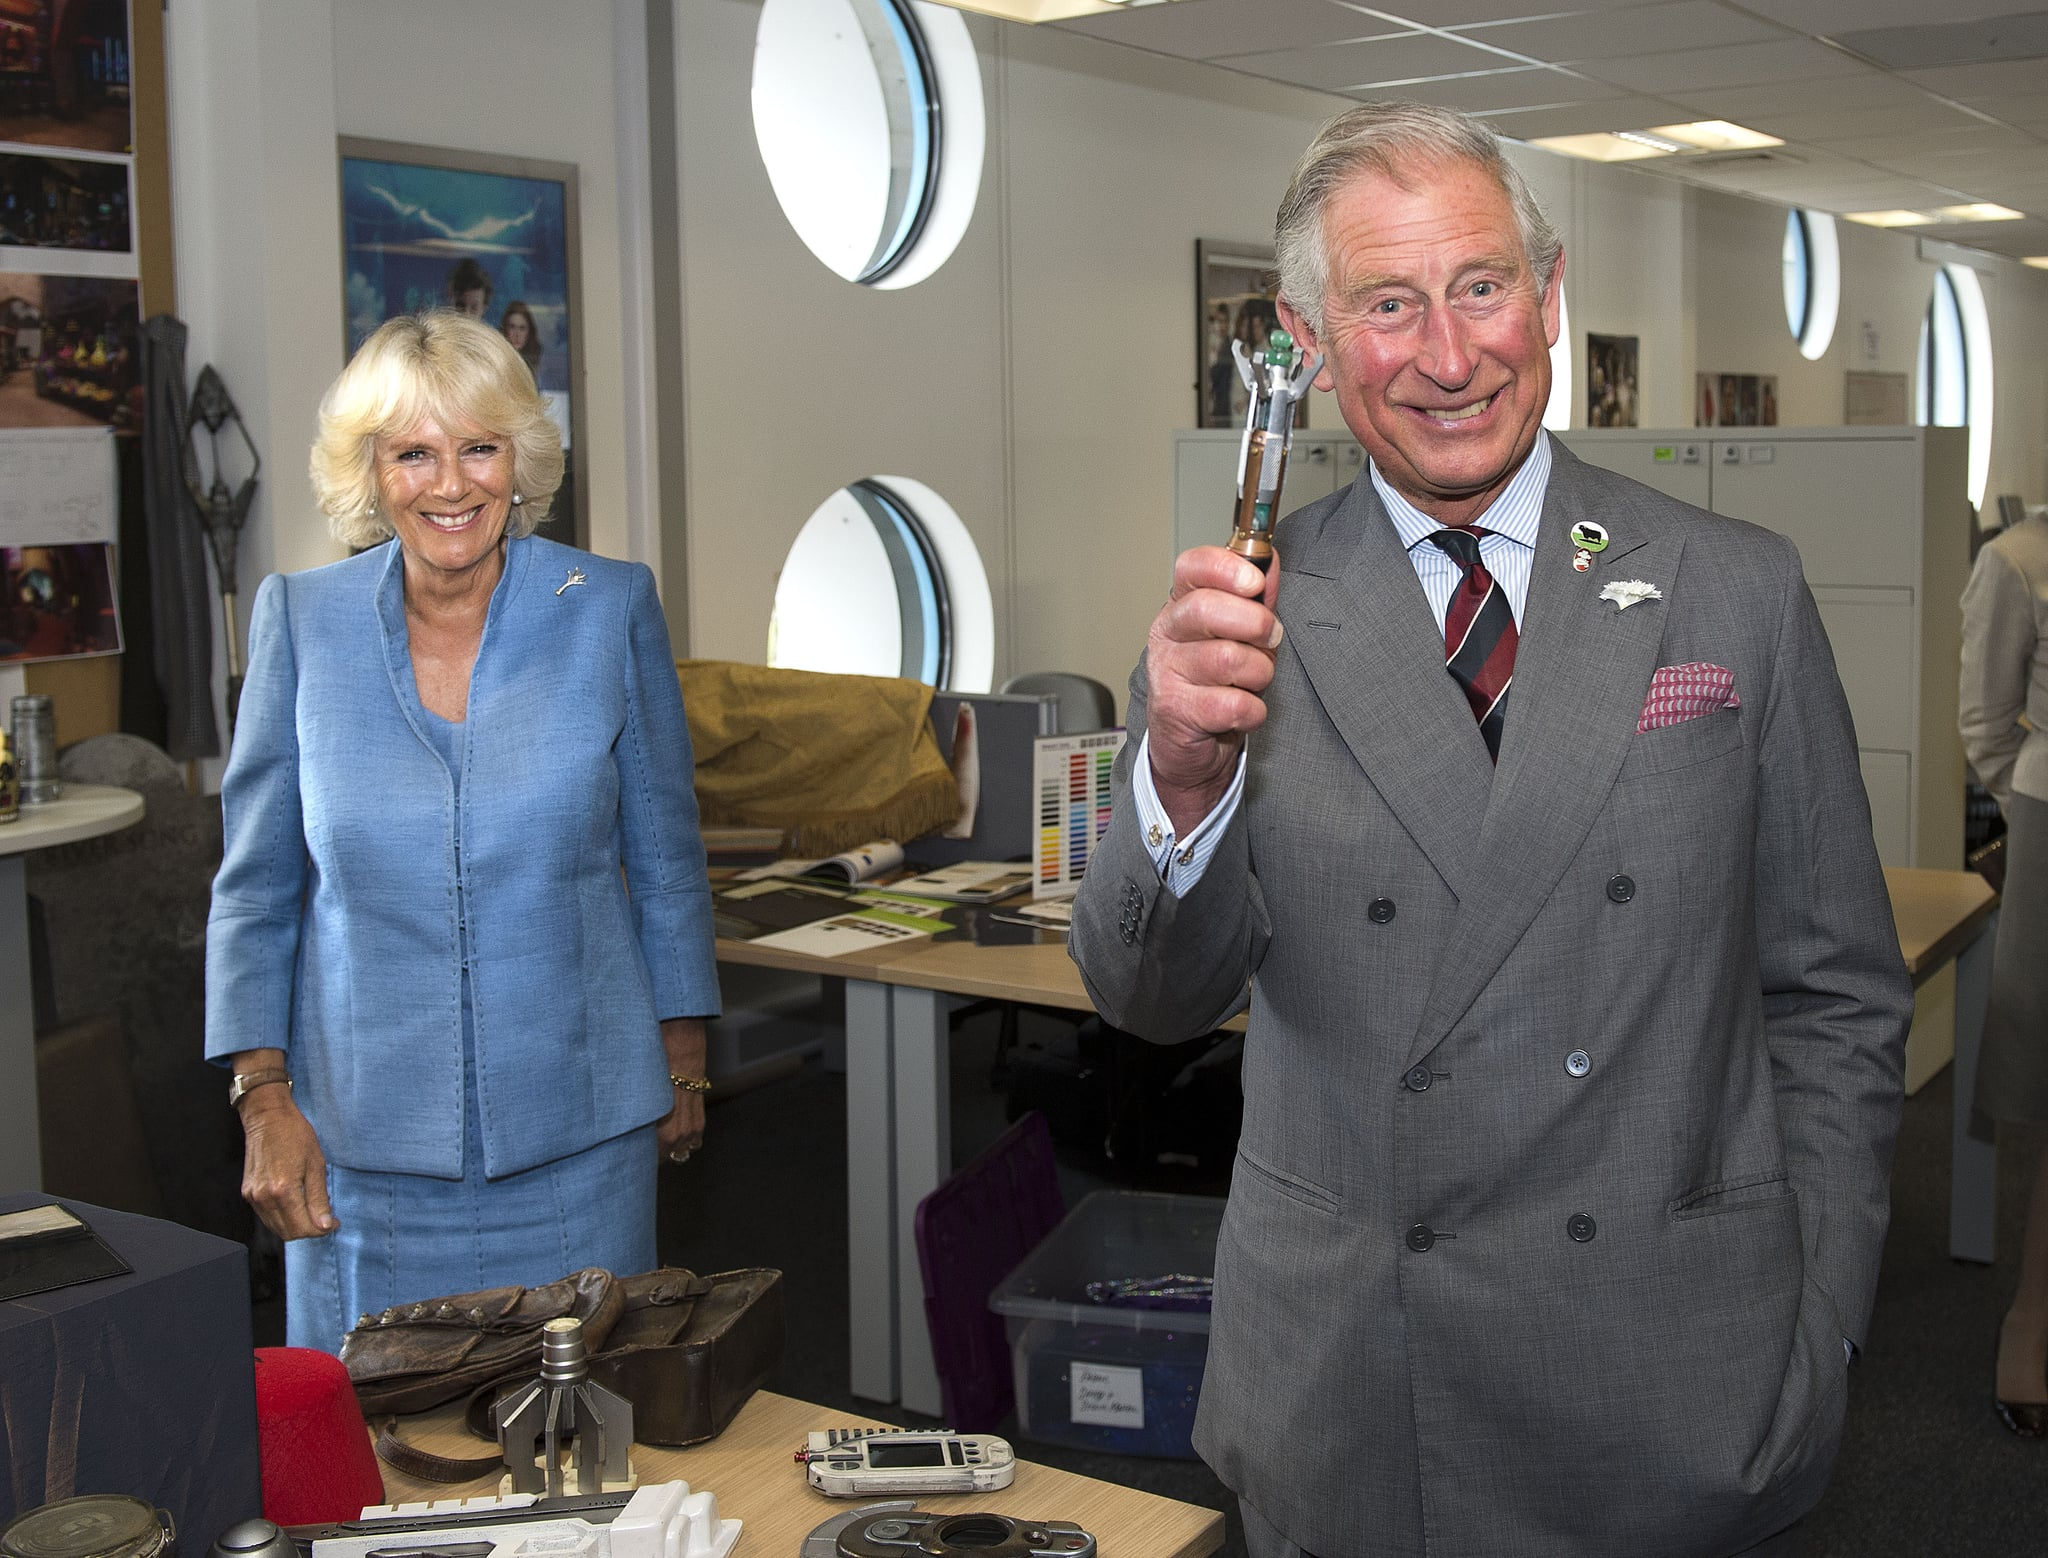 Prince Charles received a sonic screwdriver of his own.